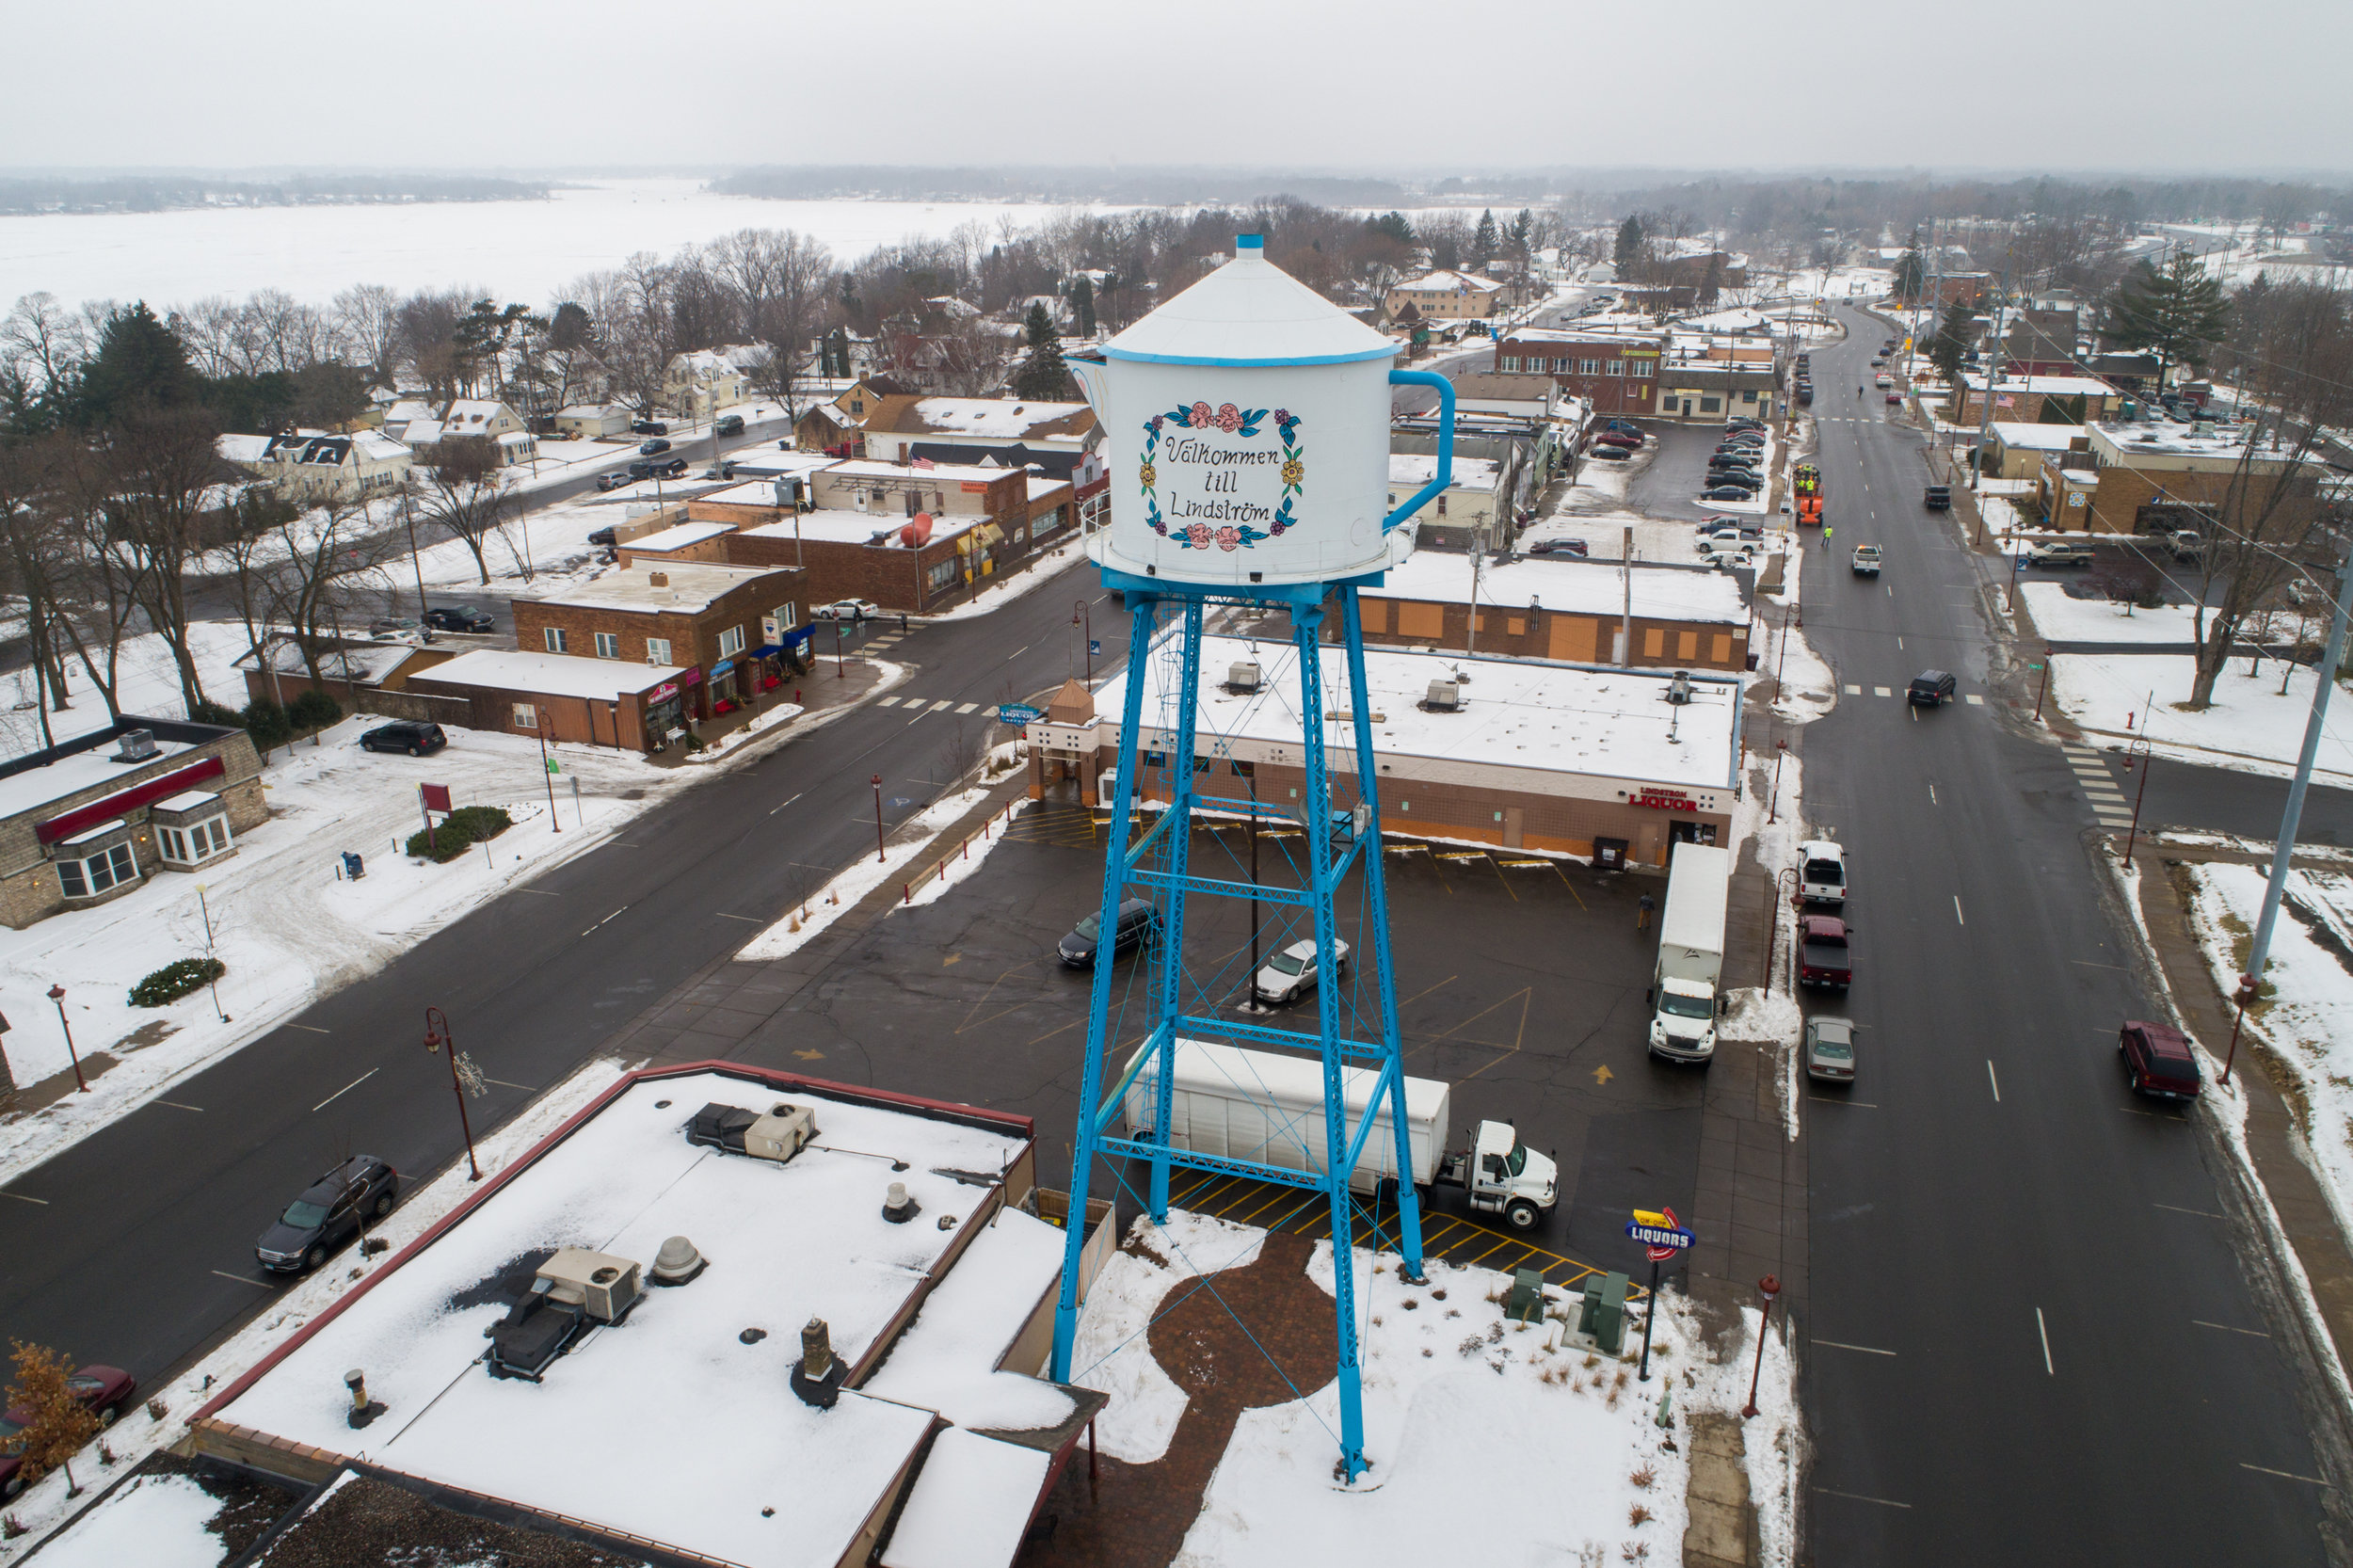 Aerial photo of Lindstrom on their water tower in the form of a Swedish Tea Pot.